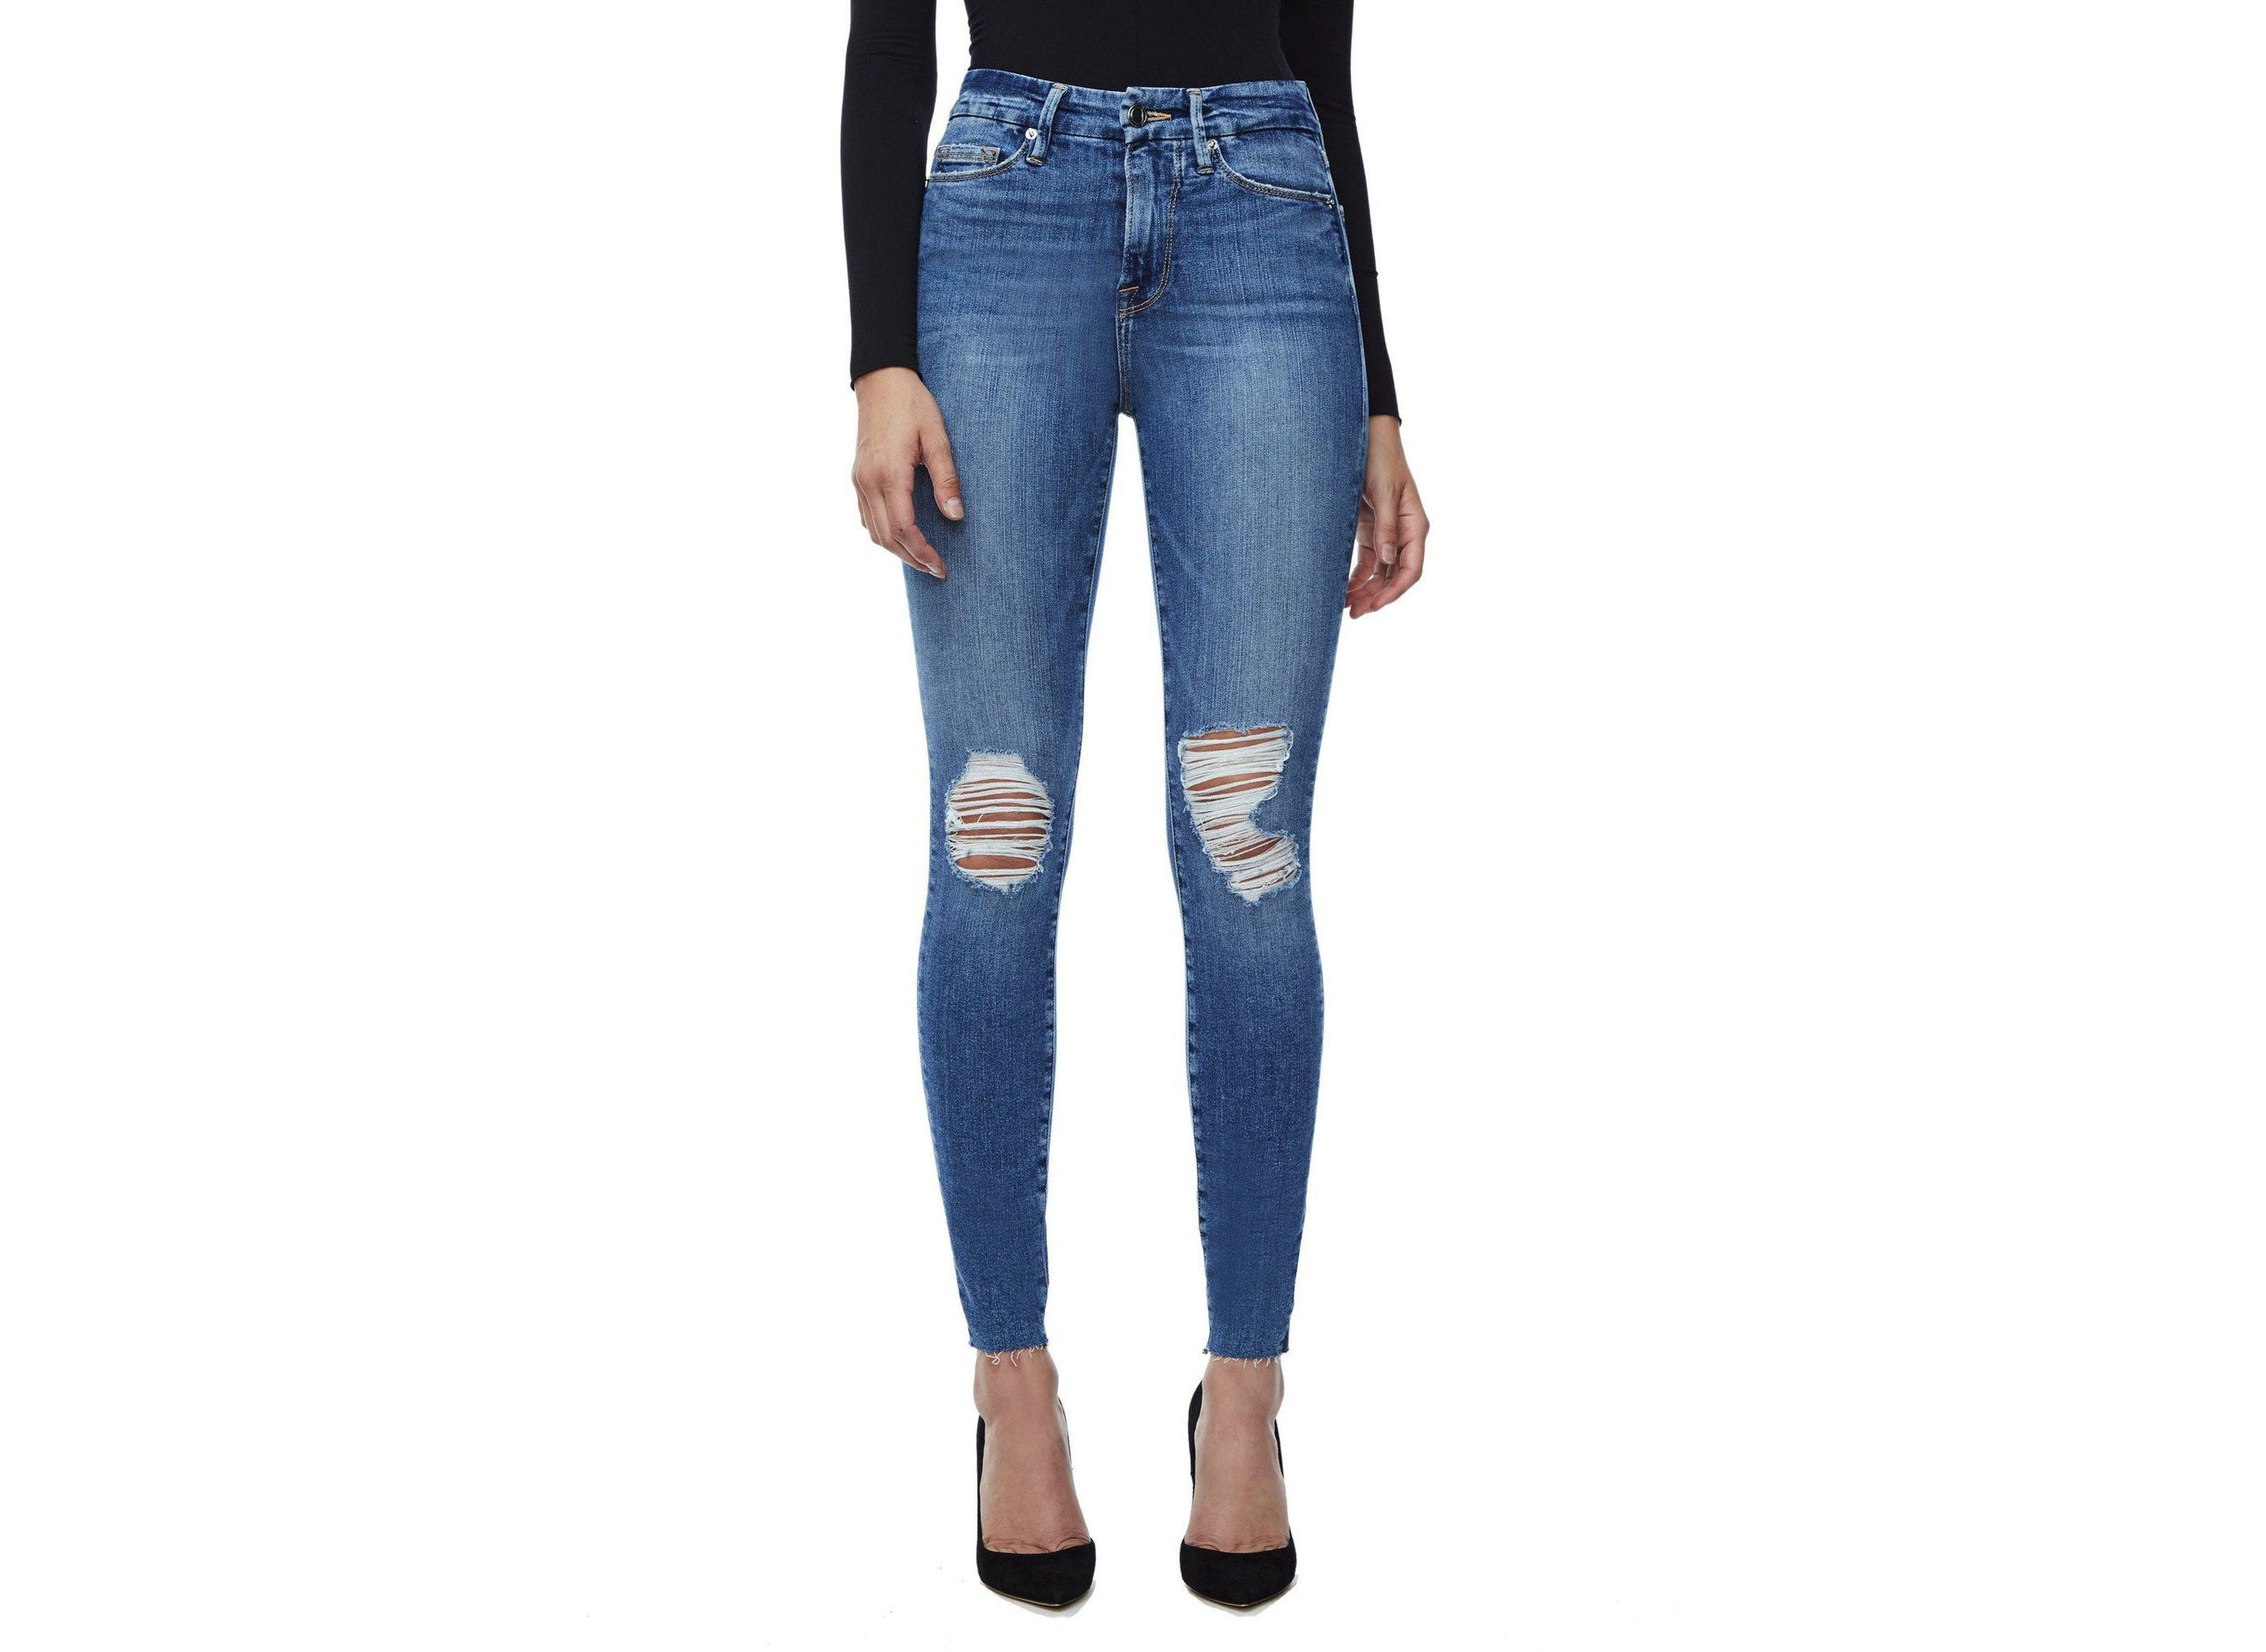 Celebs Style + Design Travel Shop clothing denim jeans person trouser waist trousers leggings electric blue joint tights